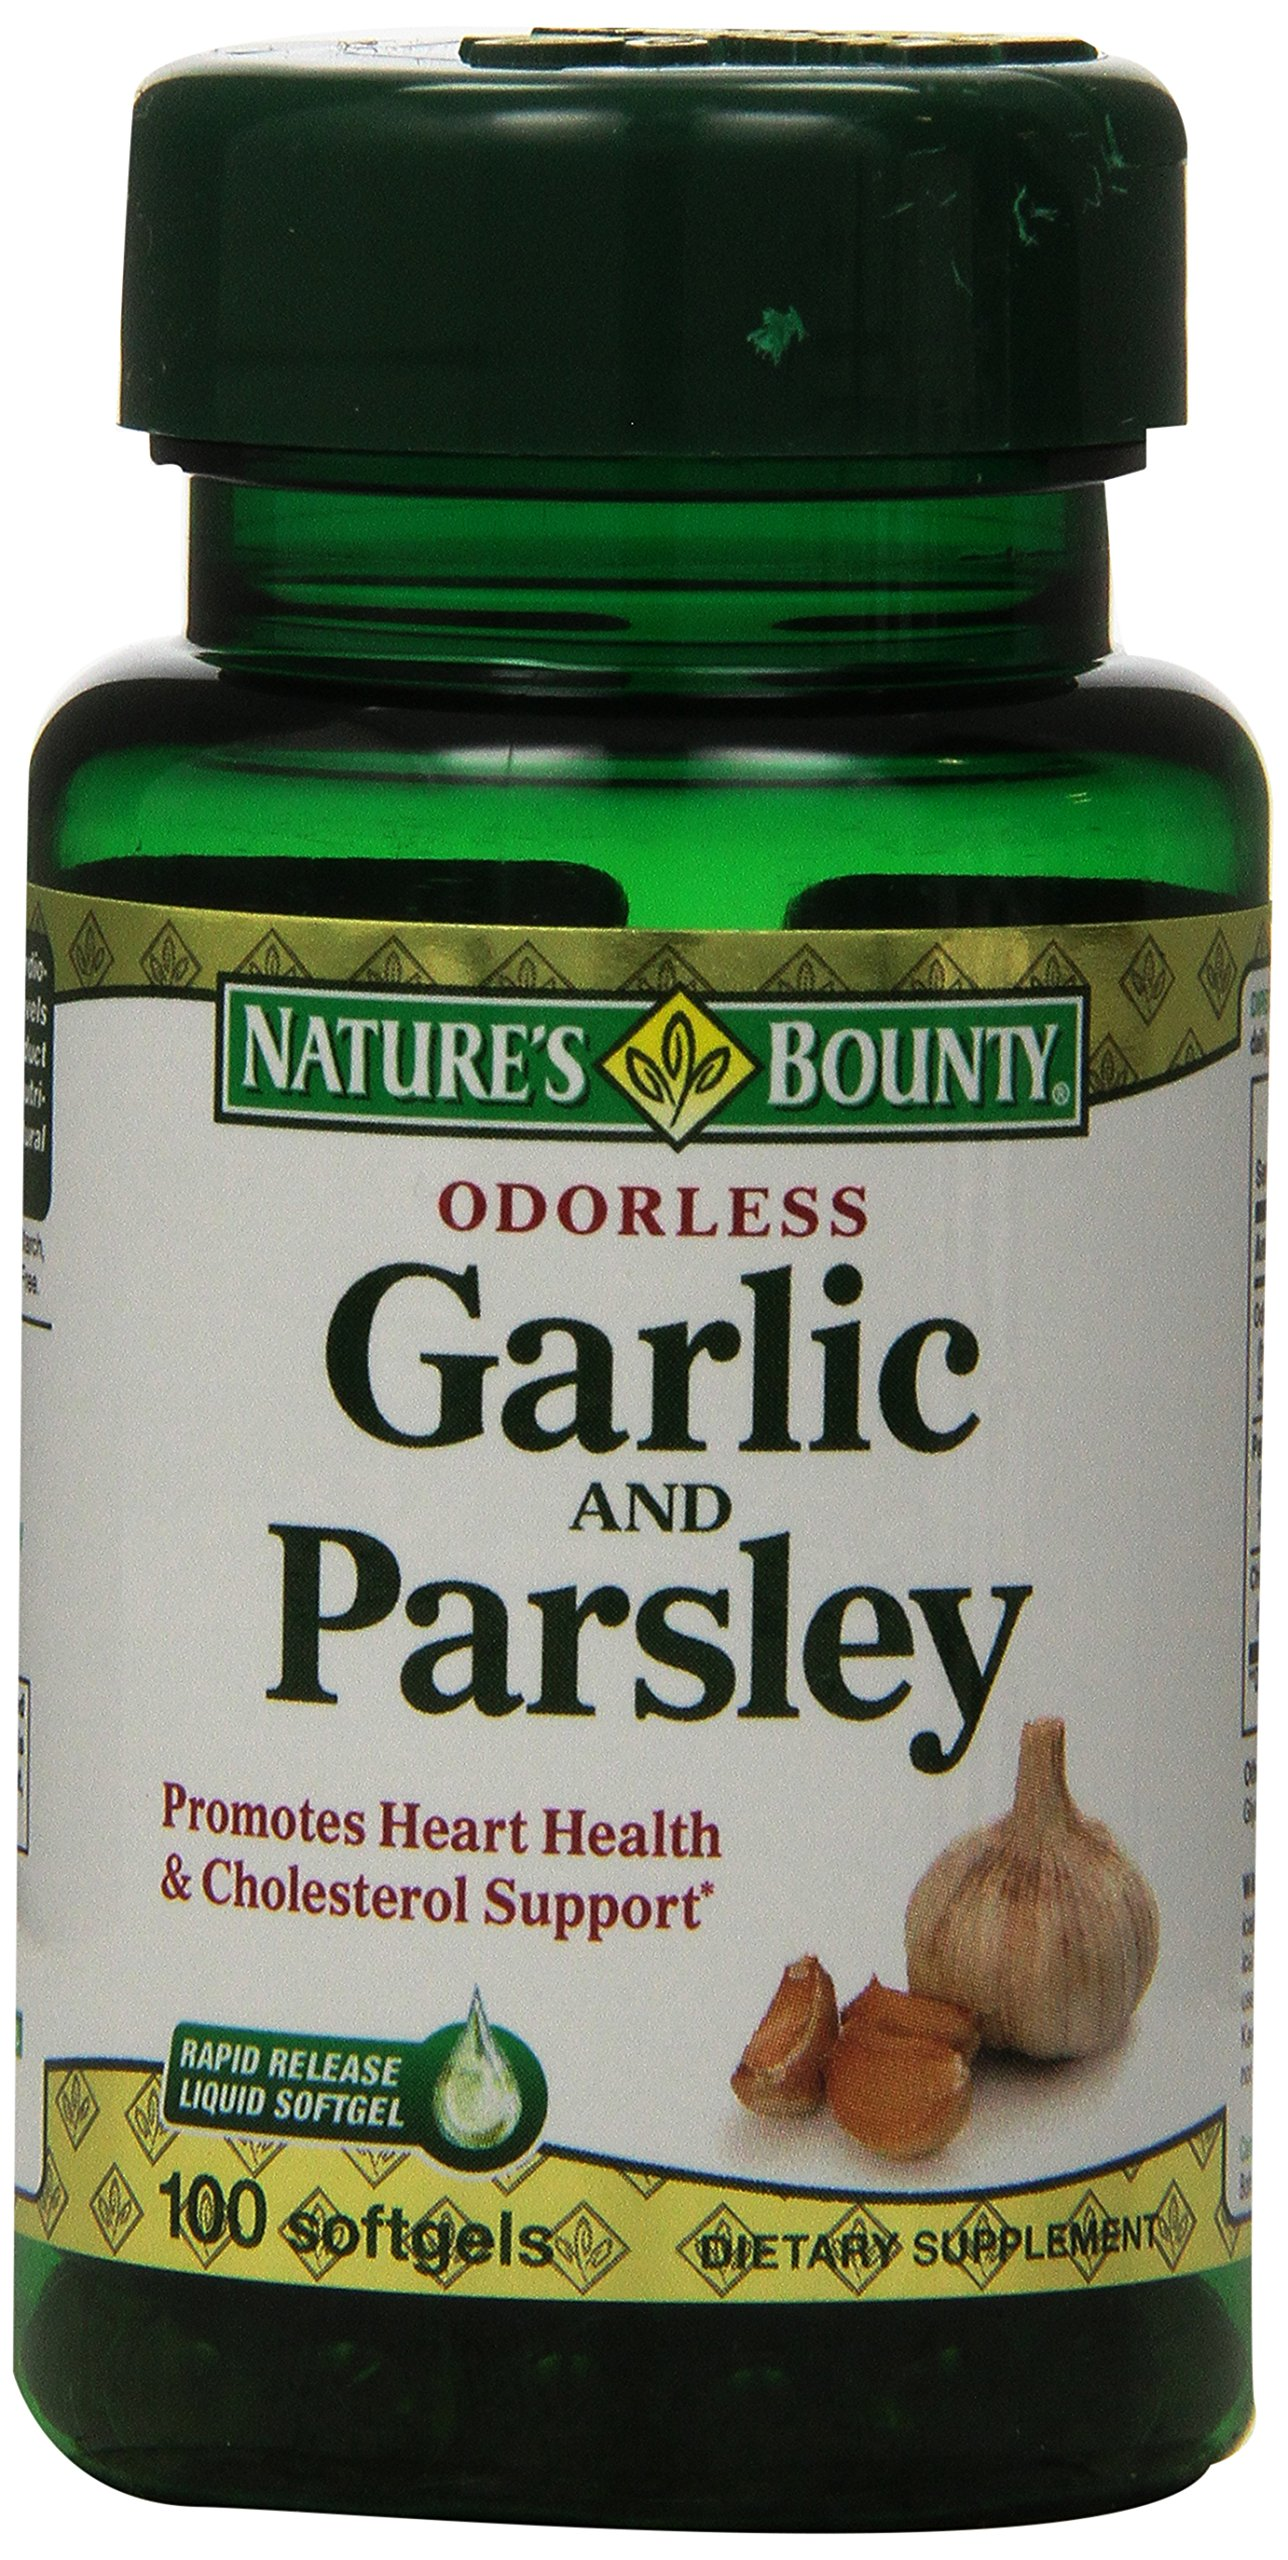 Nature's Bounty Odorless Garlic and Parsley, 100 Softgels